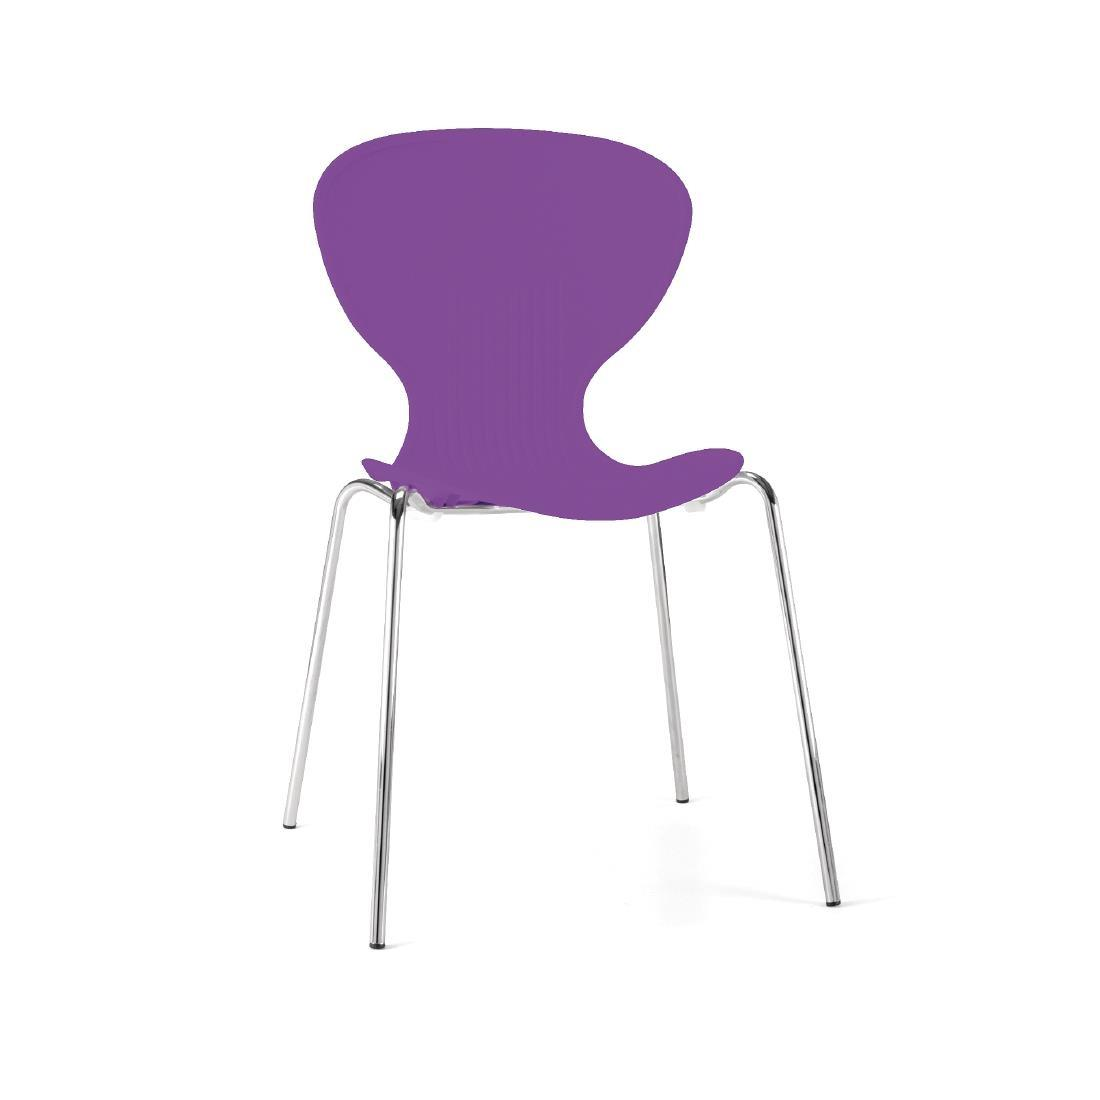 GP504 - Bolero Purple Stacking Plastic Side Chairs - Case of 4 - GP504